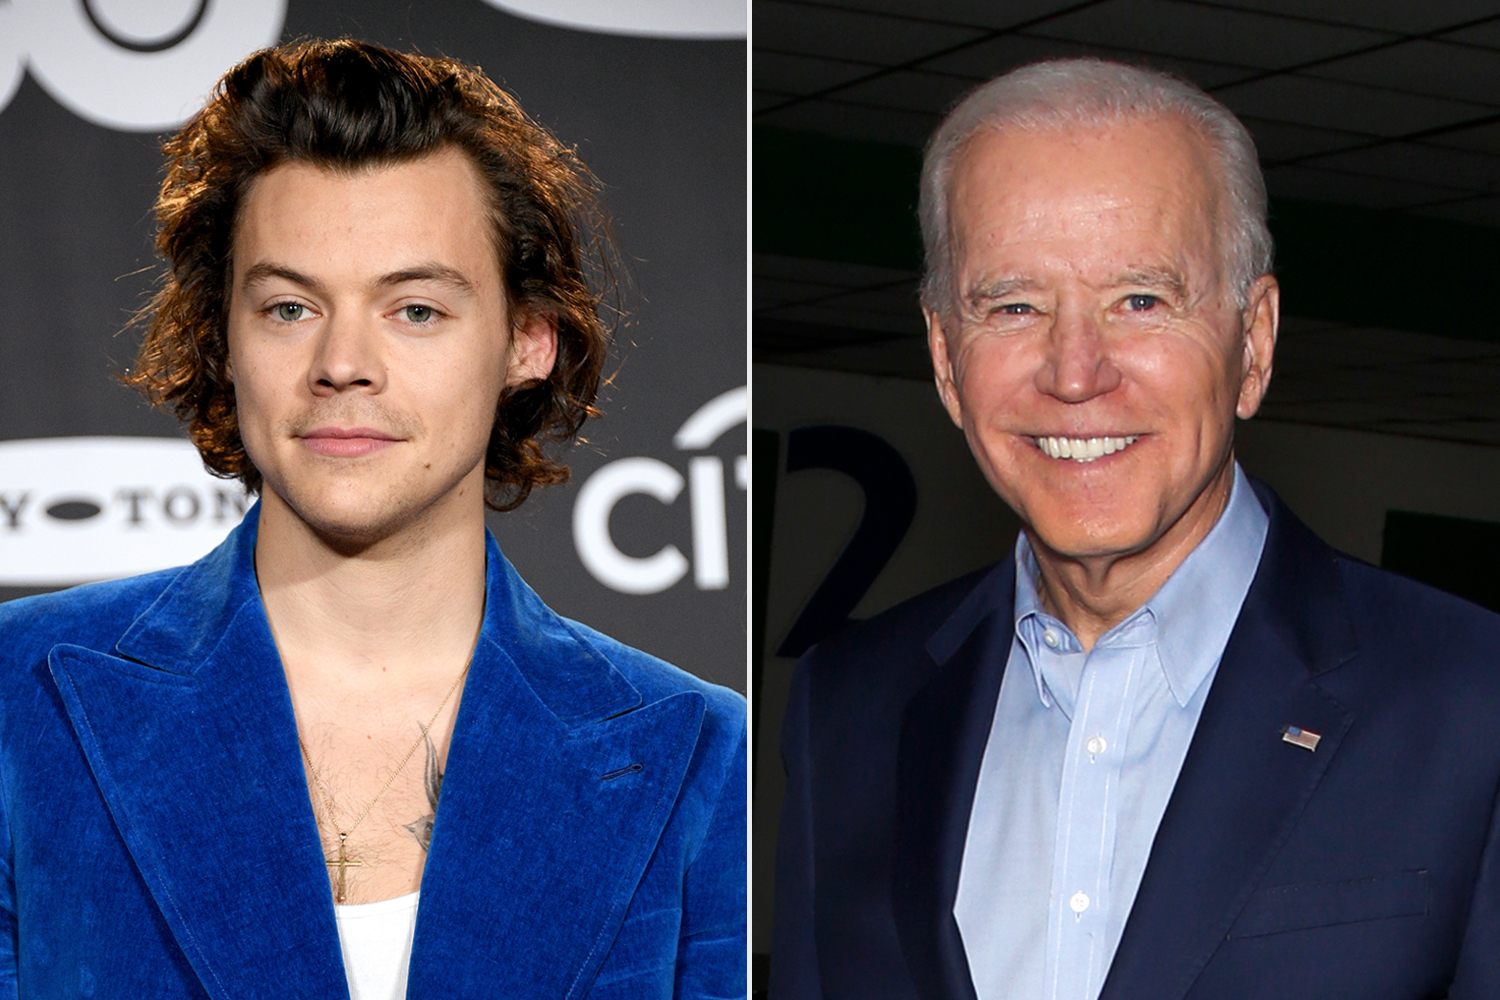 Harry Styles; Joe Biden